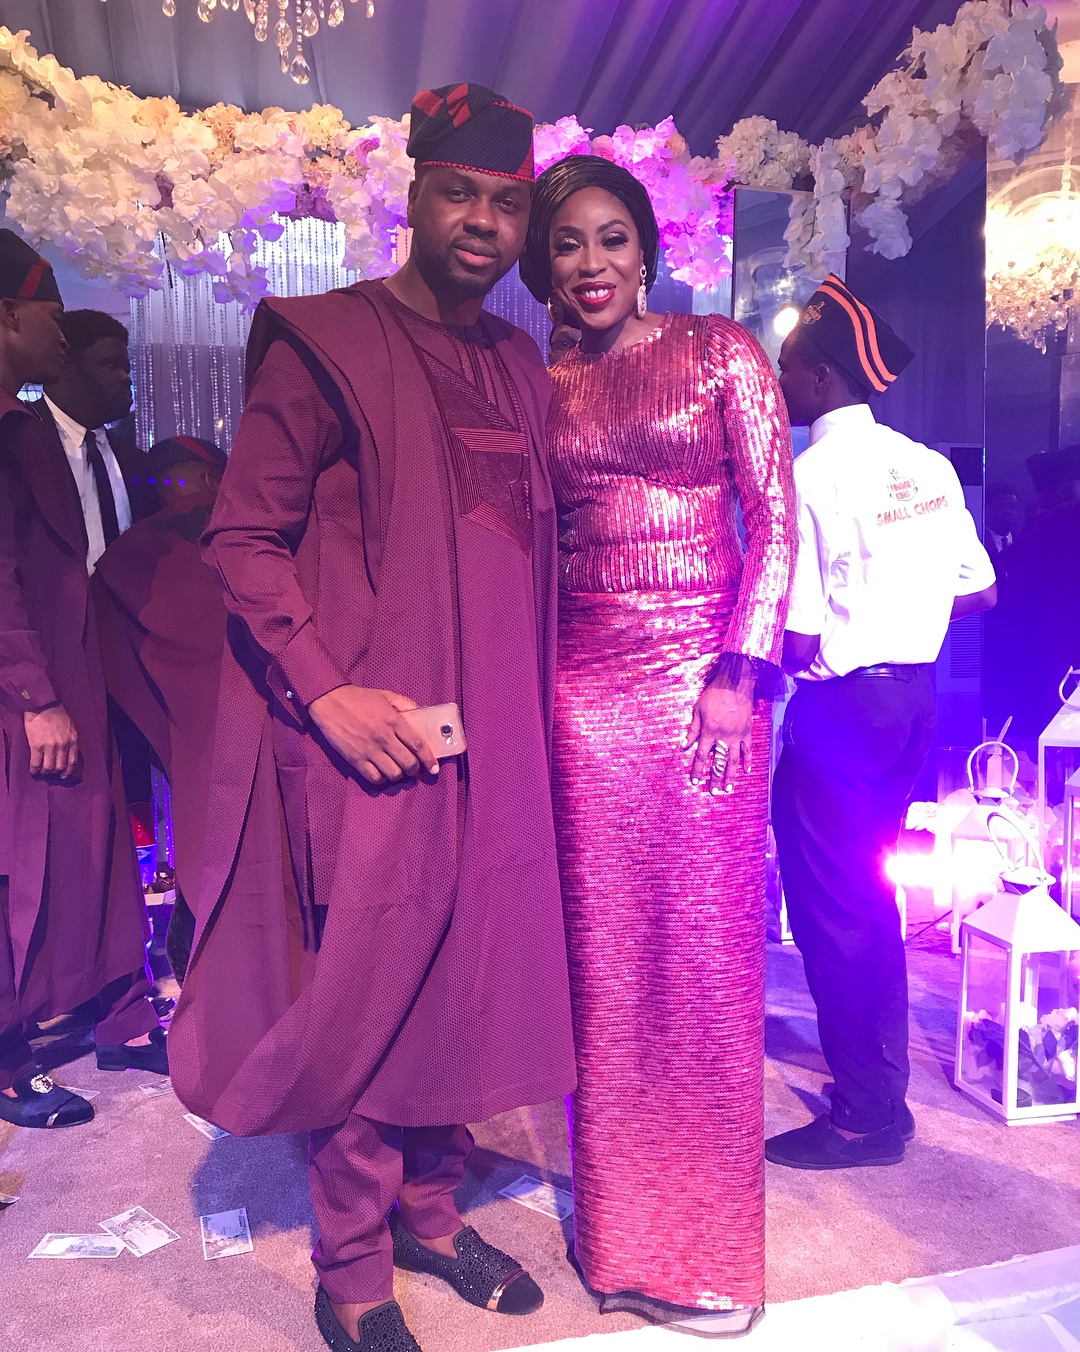 More photos: Sola Sobowale, Mo Abudu, Rita Dominic, Stephaine Coker, Toke Makinwa and more came out to slay at BankyW & Adesua